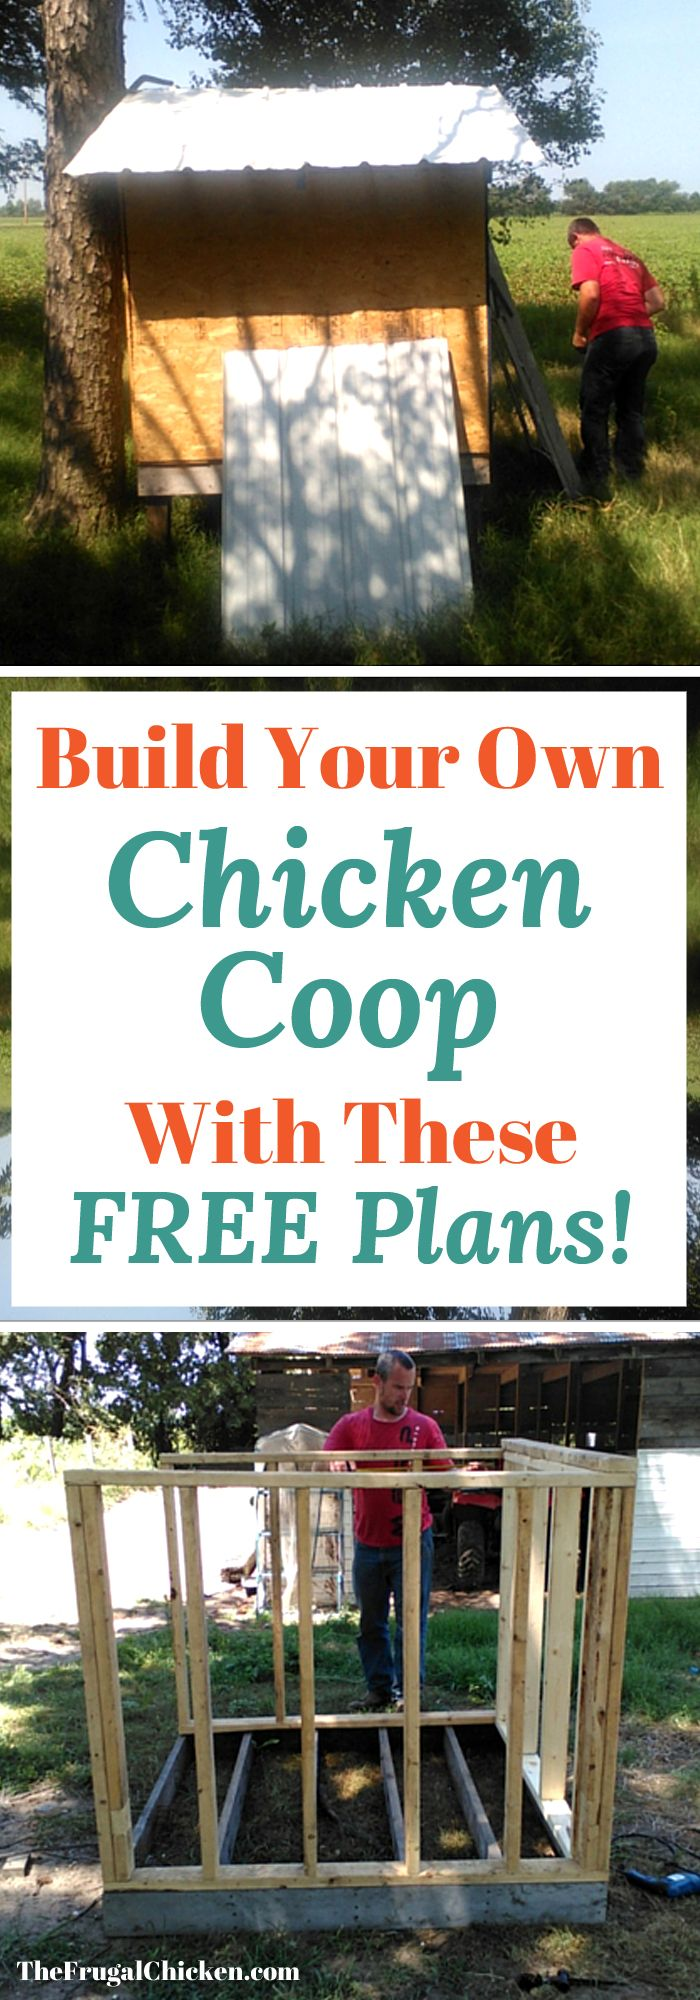 We were able to build this chicken coop for less than $100 and over 1 weekend! Here's our FREE chicken coop plans!